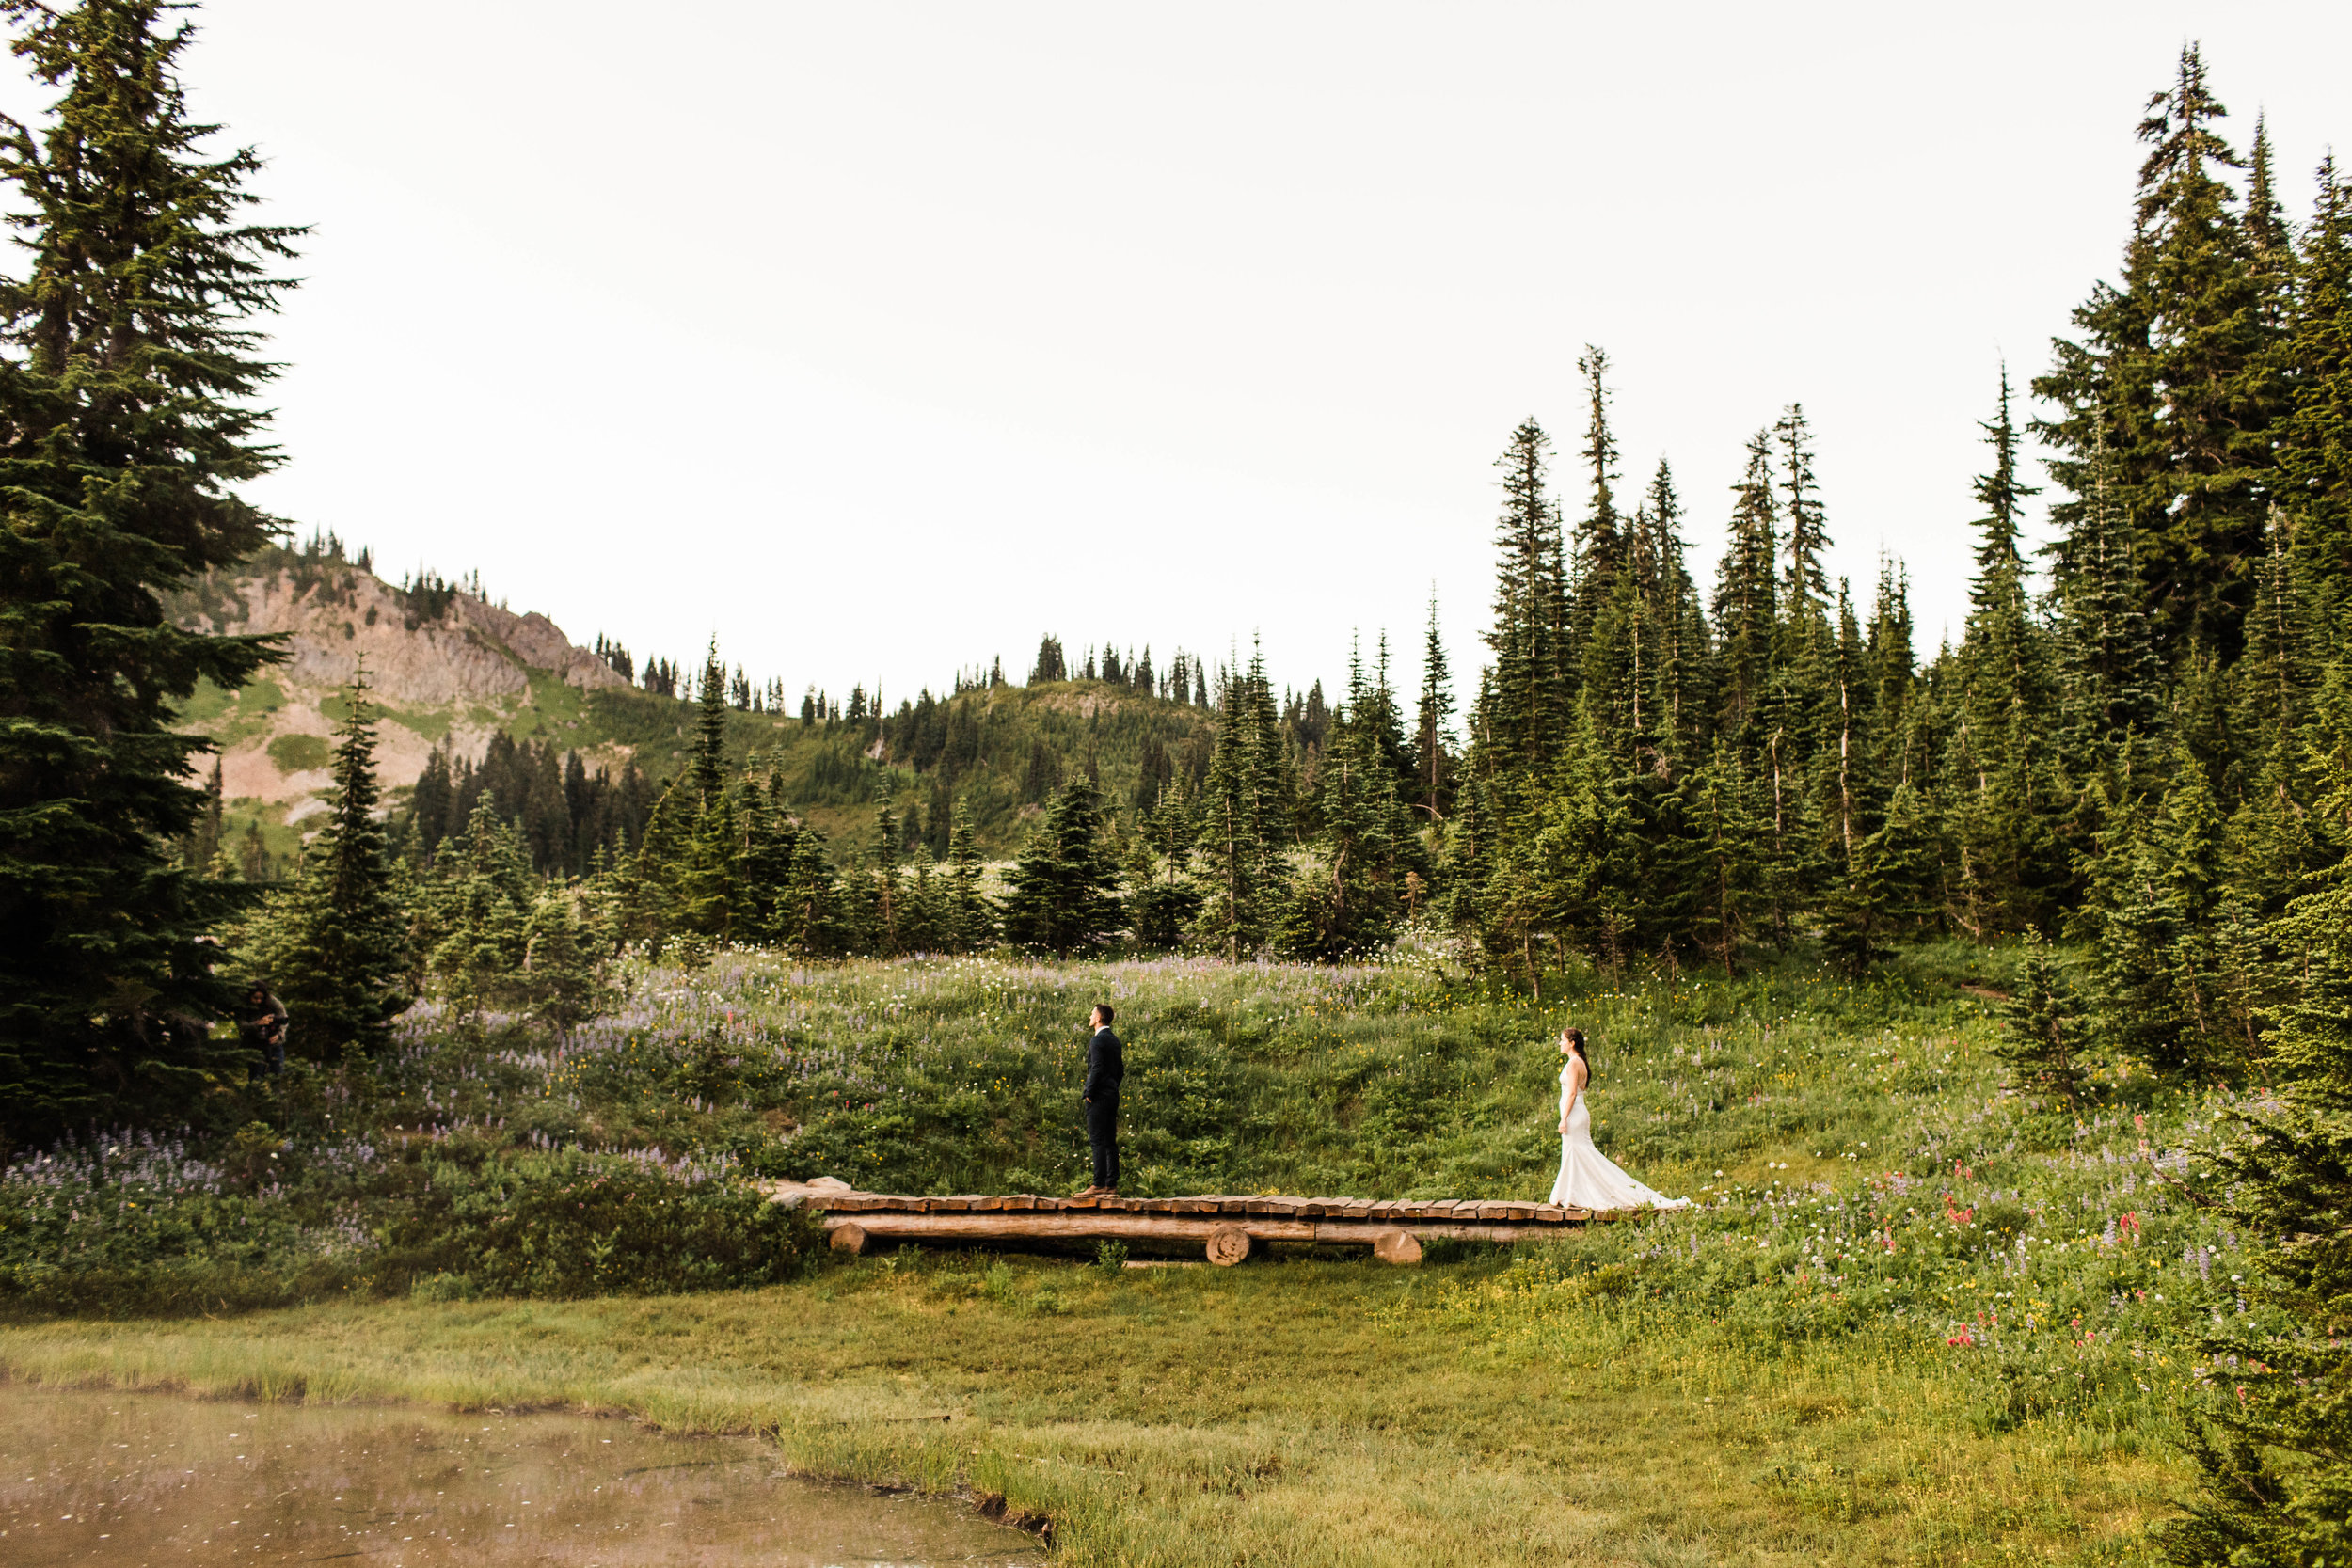 elopement first look in Mount Rainier National Park | Washington state elopement photographers